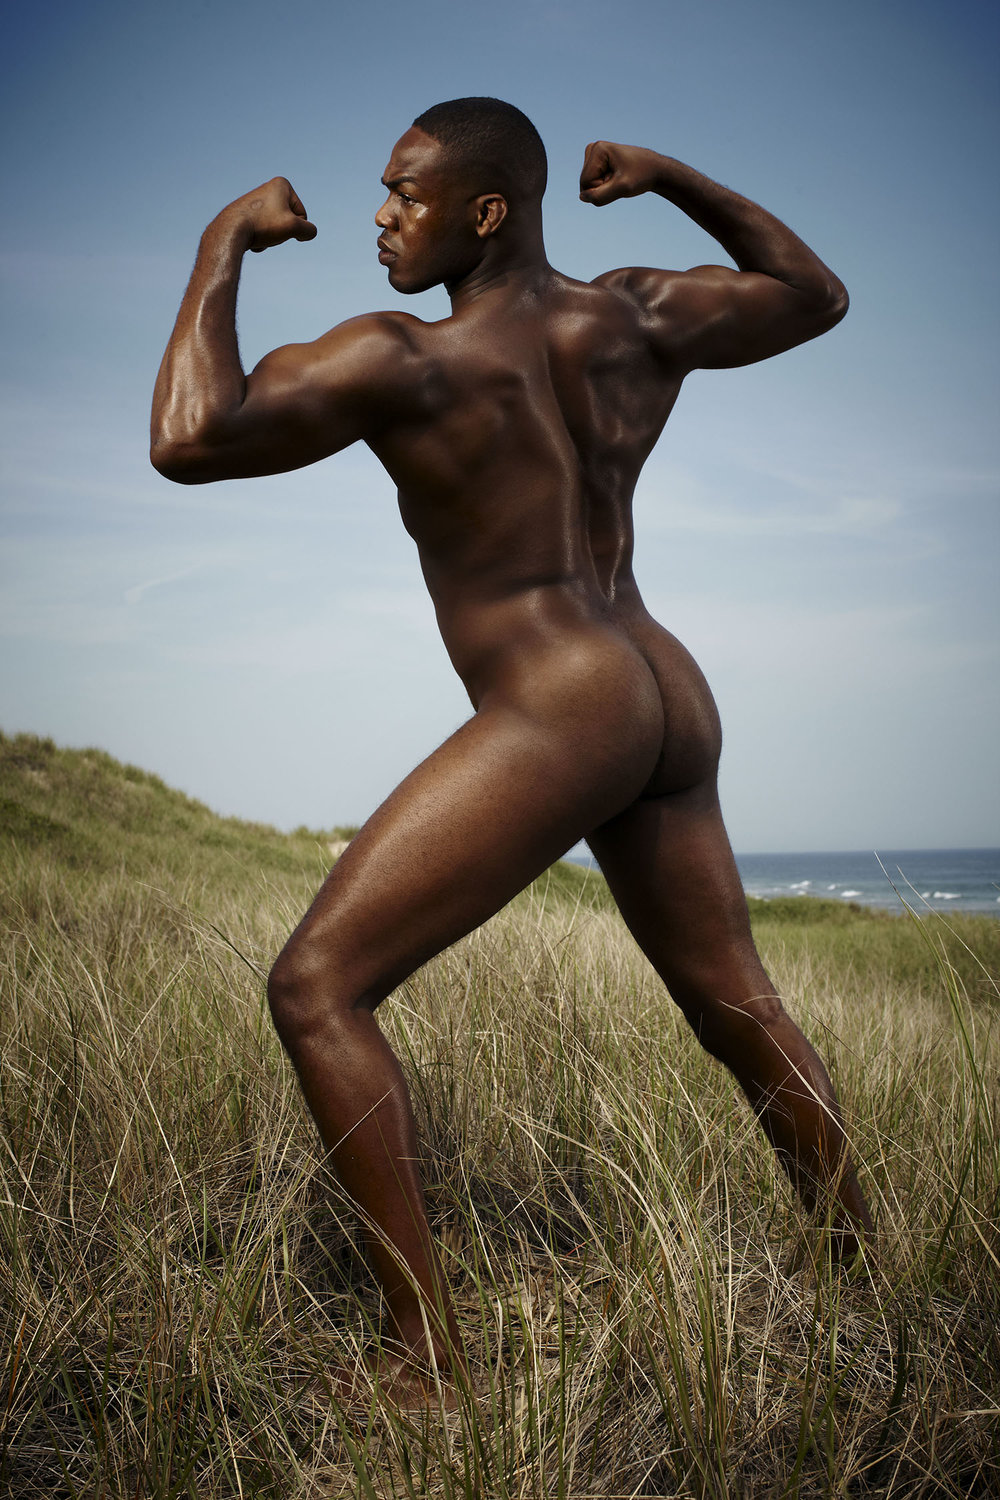 Jon_Jones_ESPN_Body_jj_02-dunes_0098.jpg